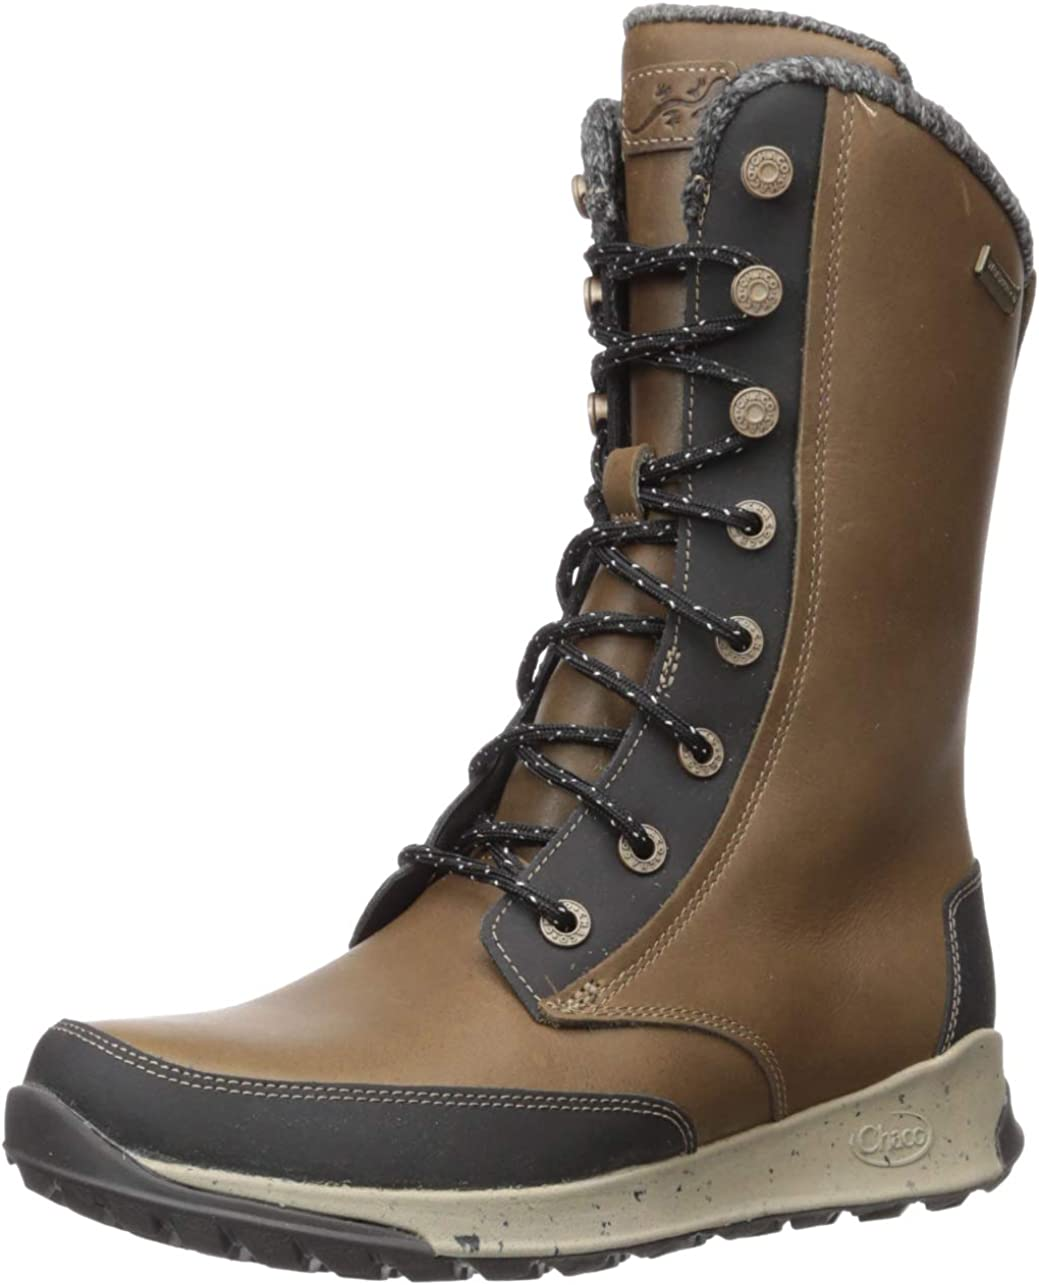 Chaco Women's Borealis Tall Waterproof Boot, Fossil, 11 M US